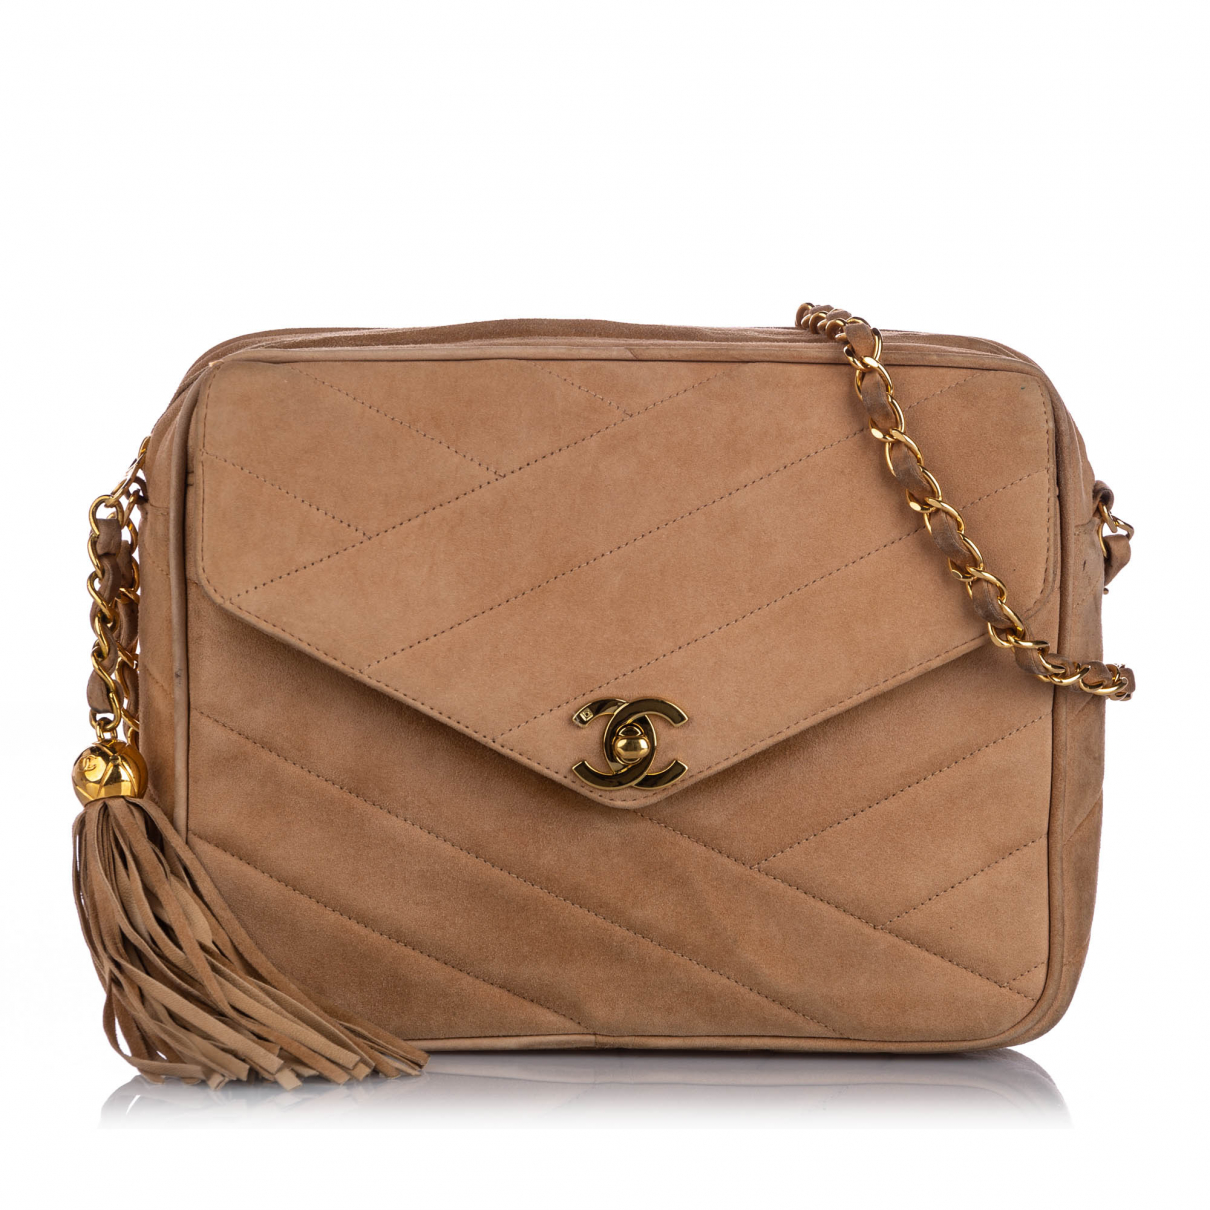 Chanel \N Brown Leather handbag for Women \N